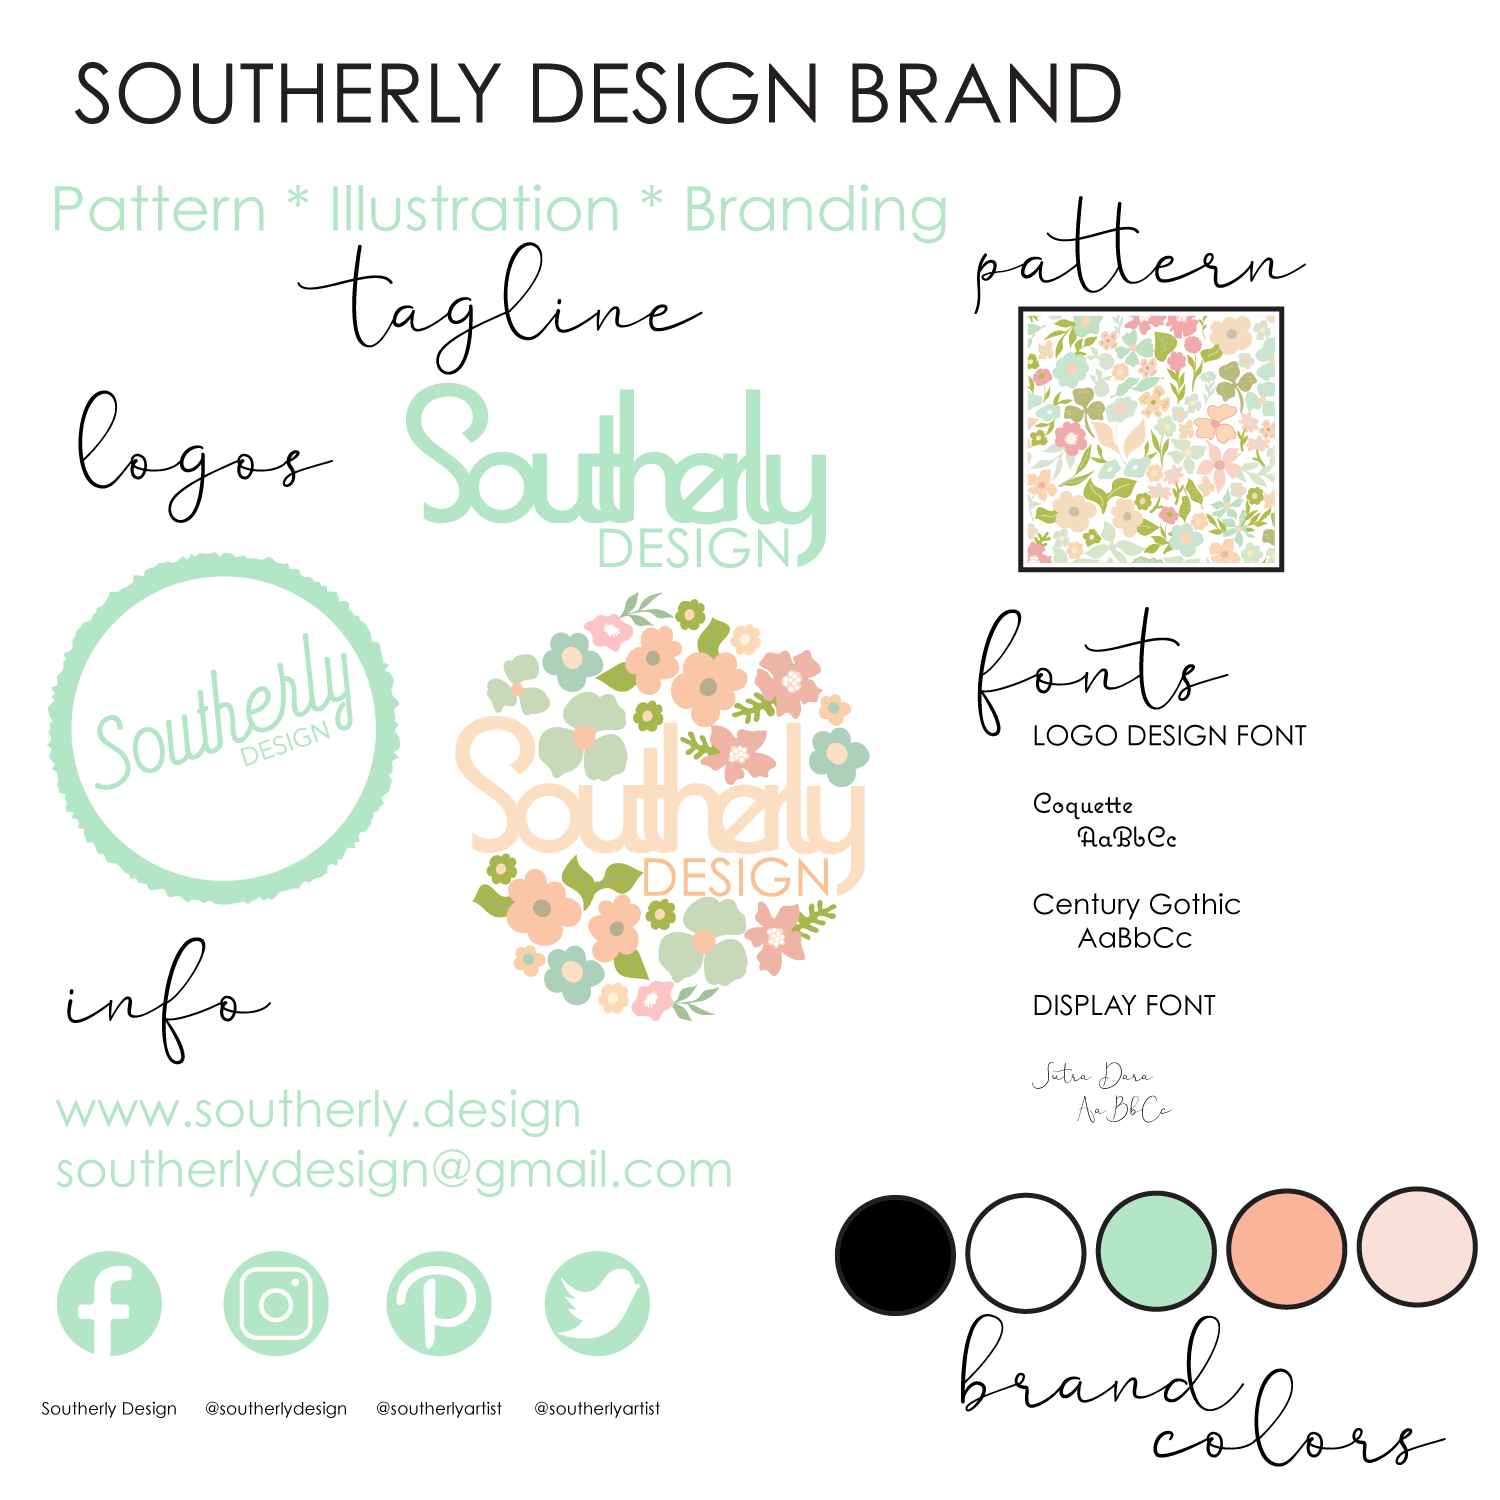 Southerly-Design-Brand-Mood-Board.png